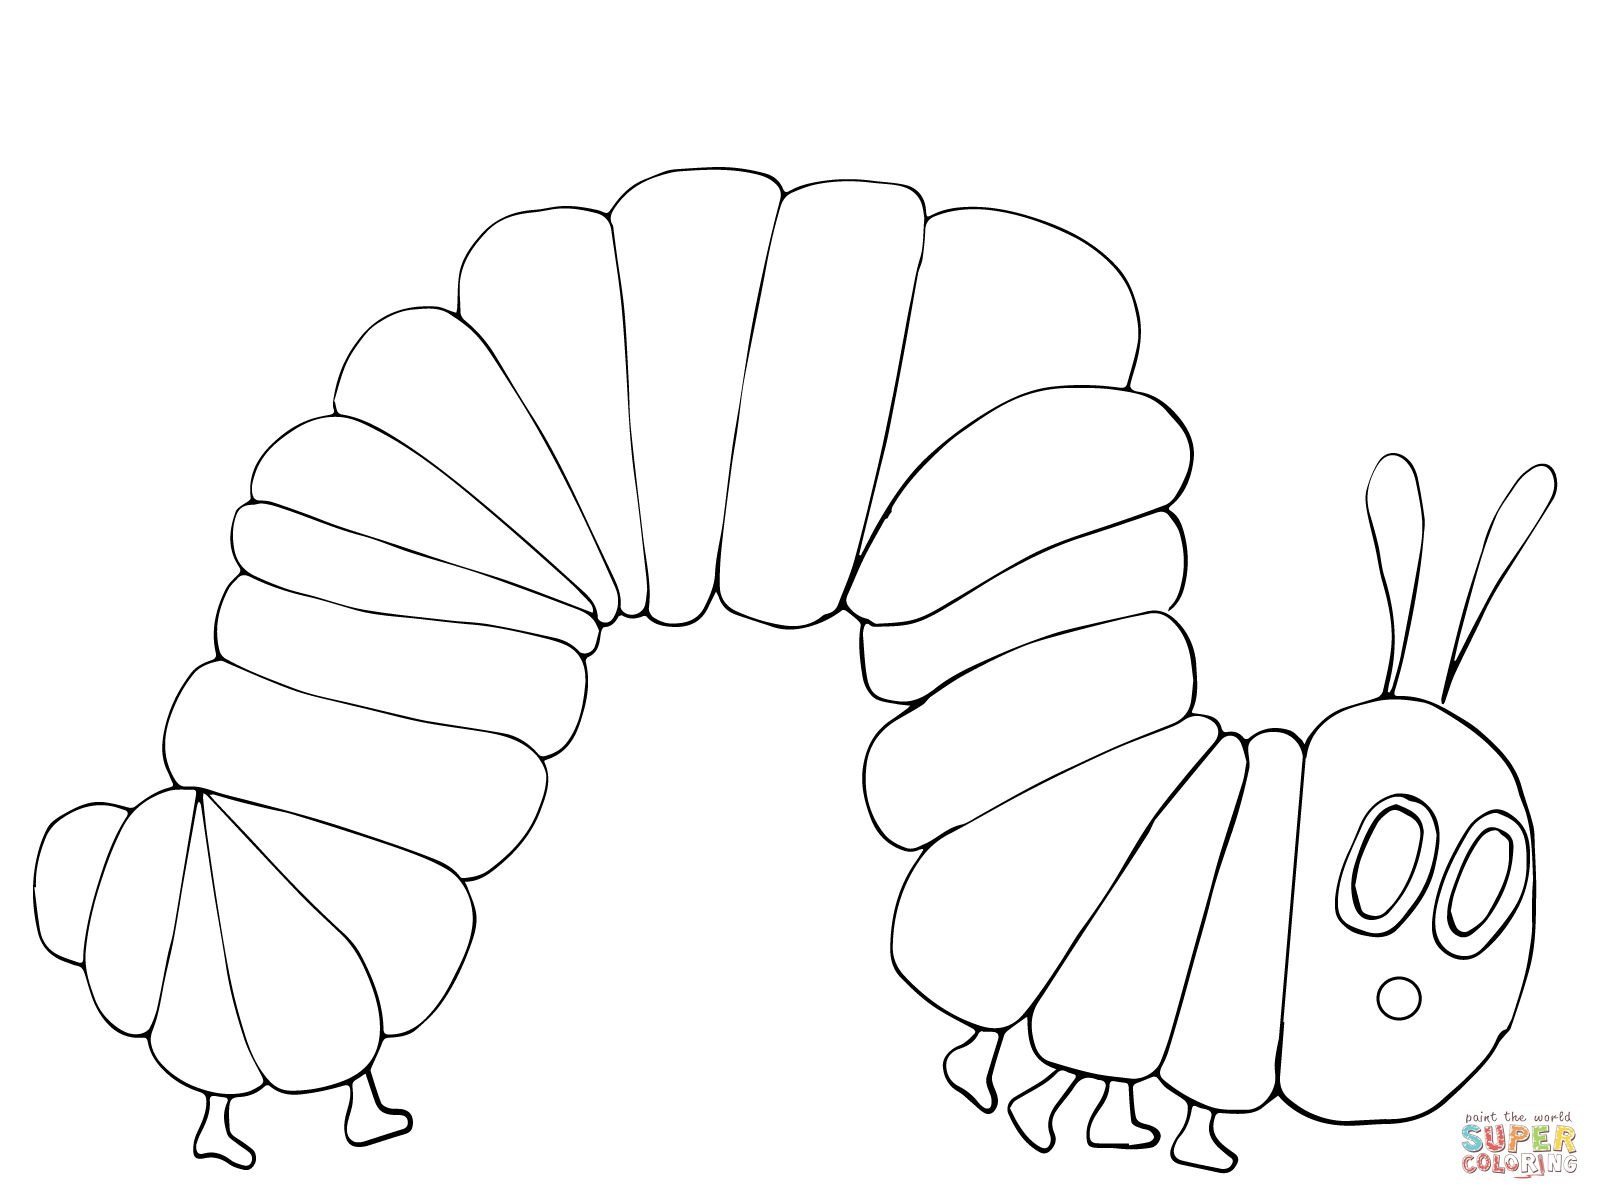 Very Hungry Caterpillar Coloring Page Very Hungry Caterpillar Printables Hungry Caterpillar Craft The Very Hungry Caterpillar Activities